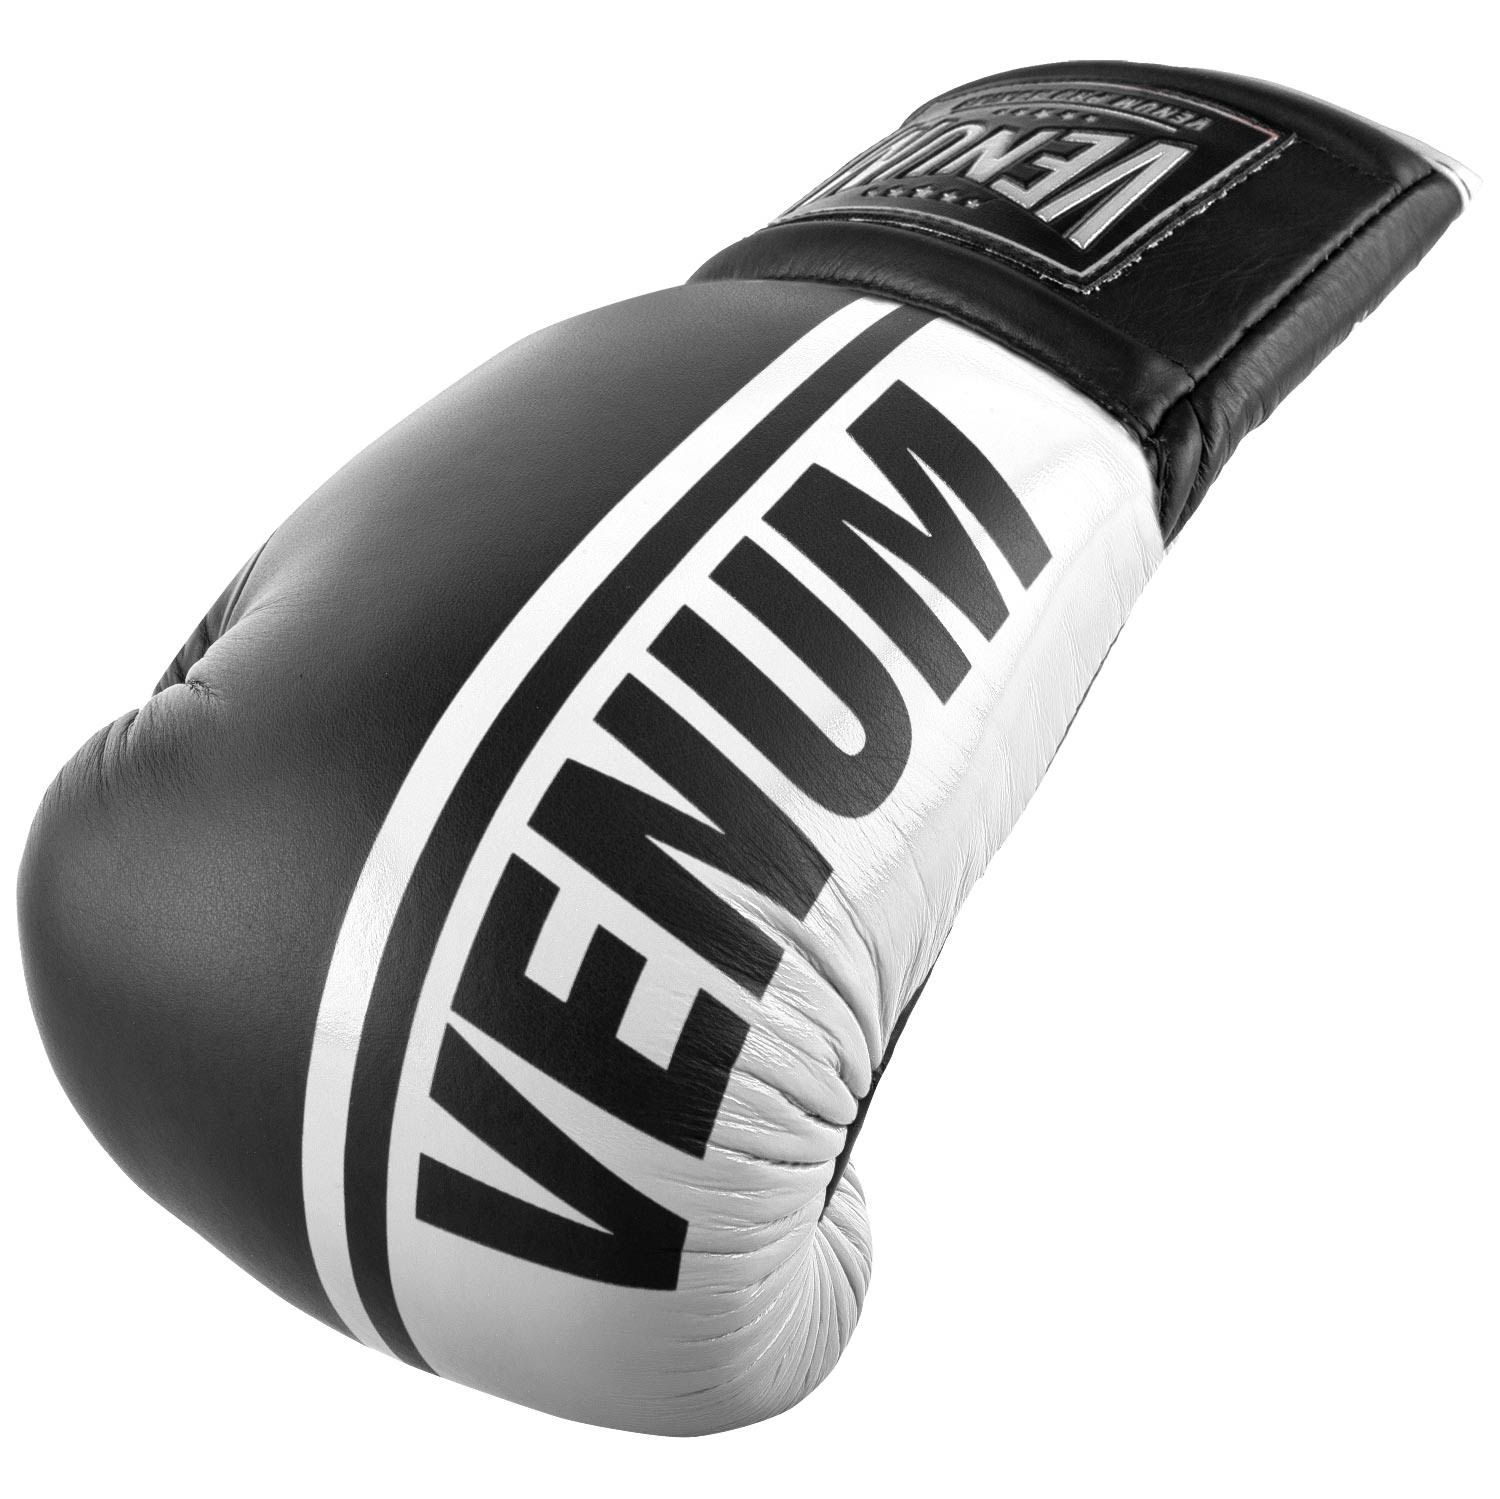 Venum Shield Pro Boxing Gloves - With Laces - Black/White